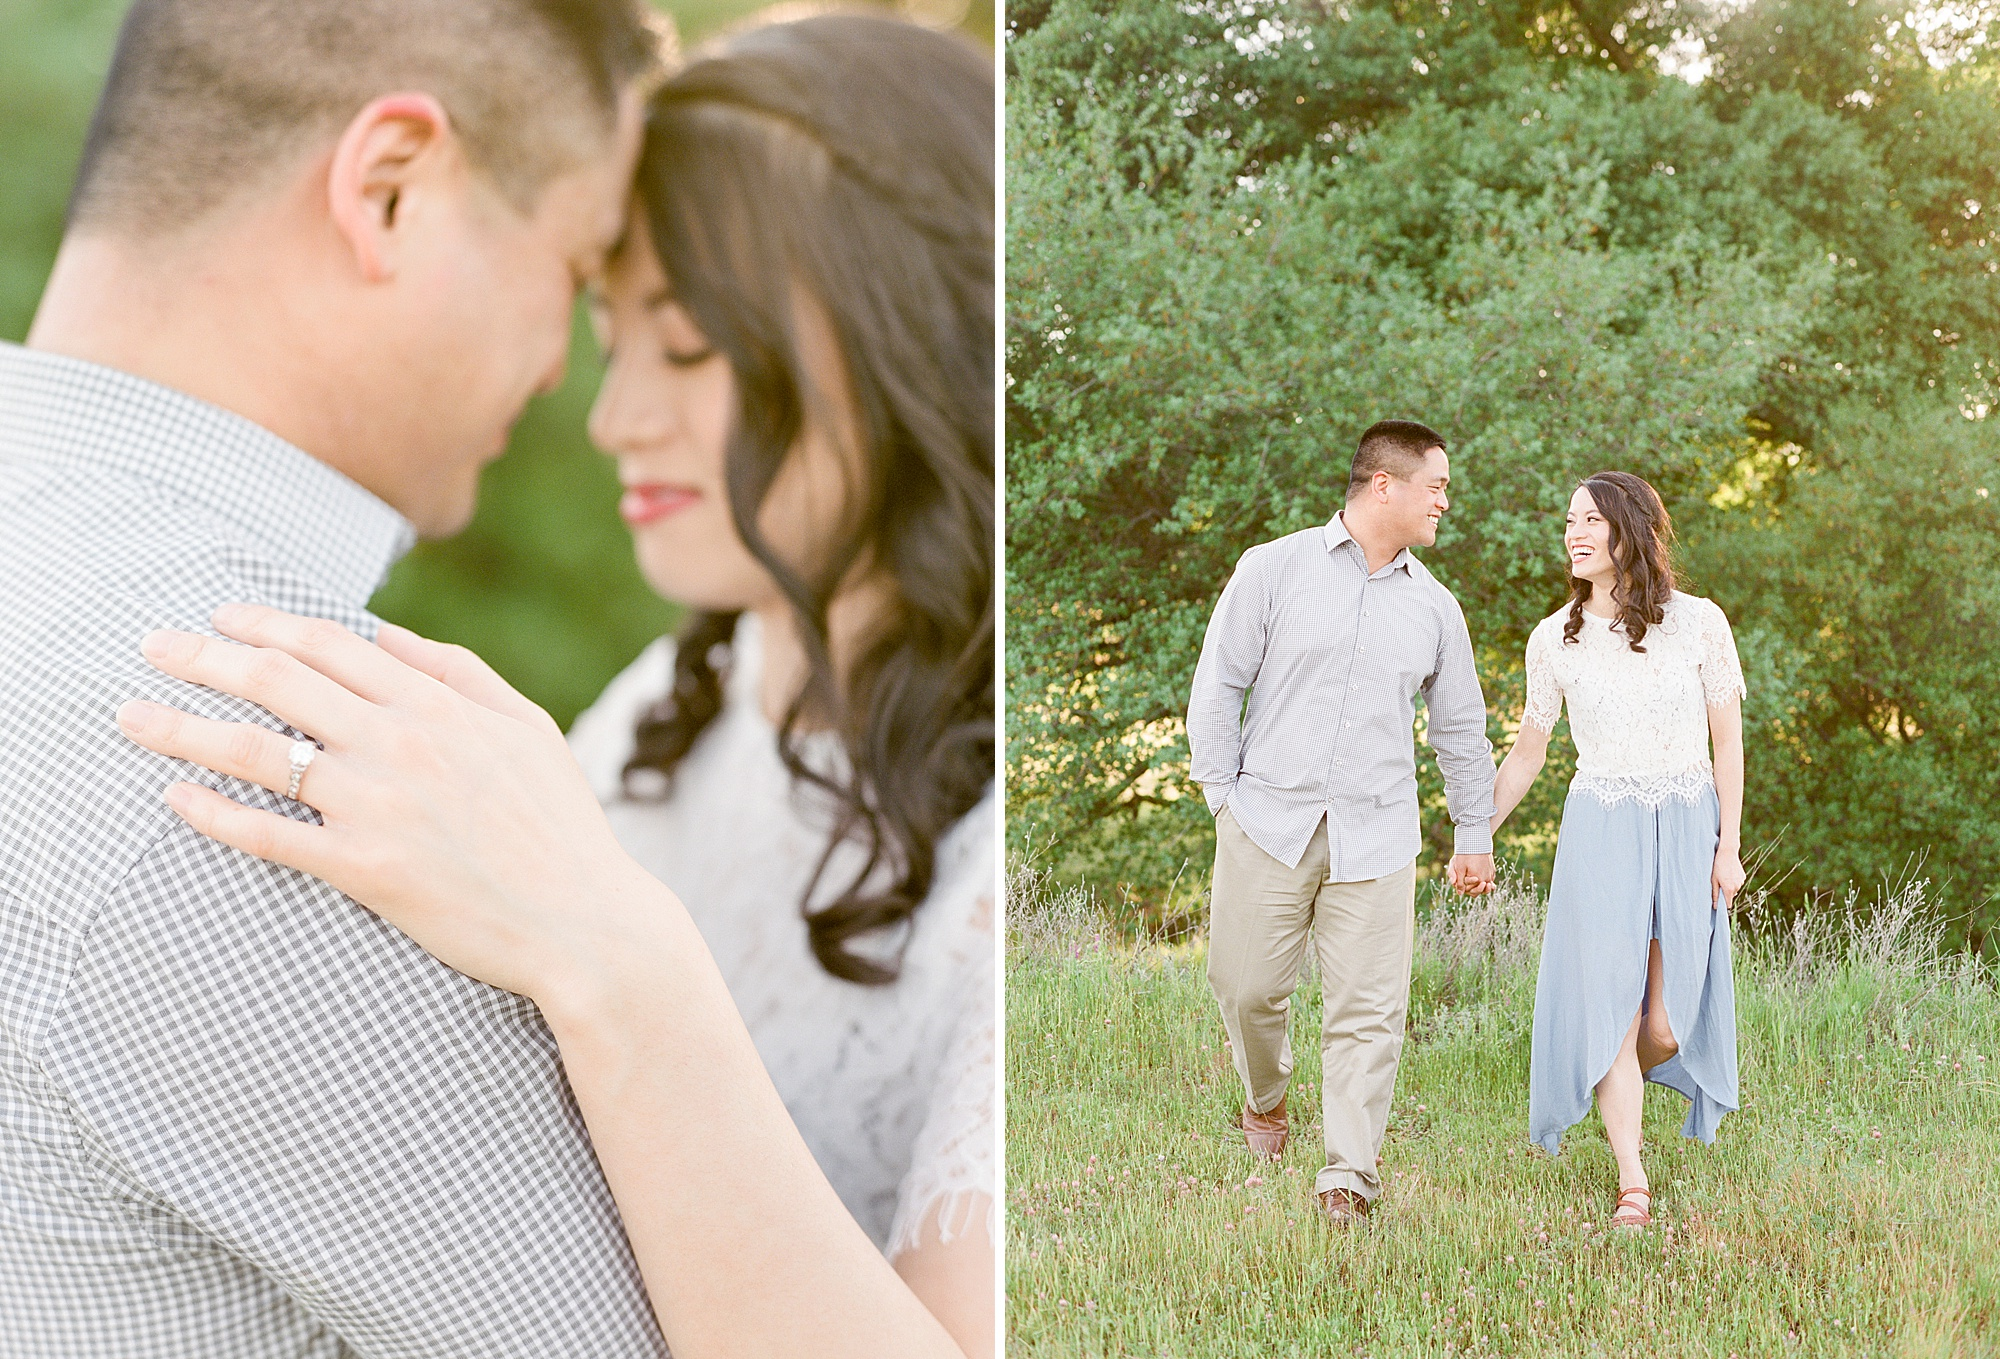 El Dorado Hills Engagement Session - Wendy and Danny - Ashley Baumgartner - Sacramento Wedding Photographer and Sacramento Wedding Photography - Bay Area Wedding Photographer_0002.jpg